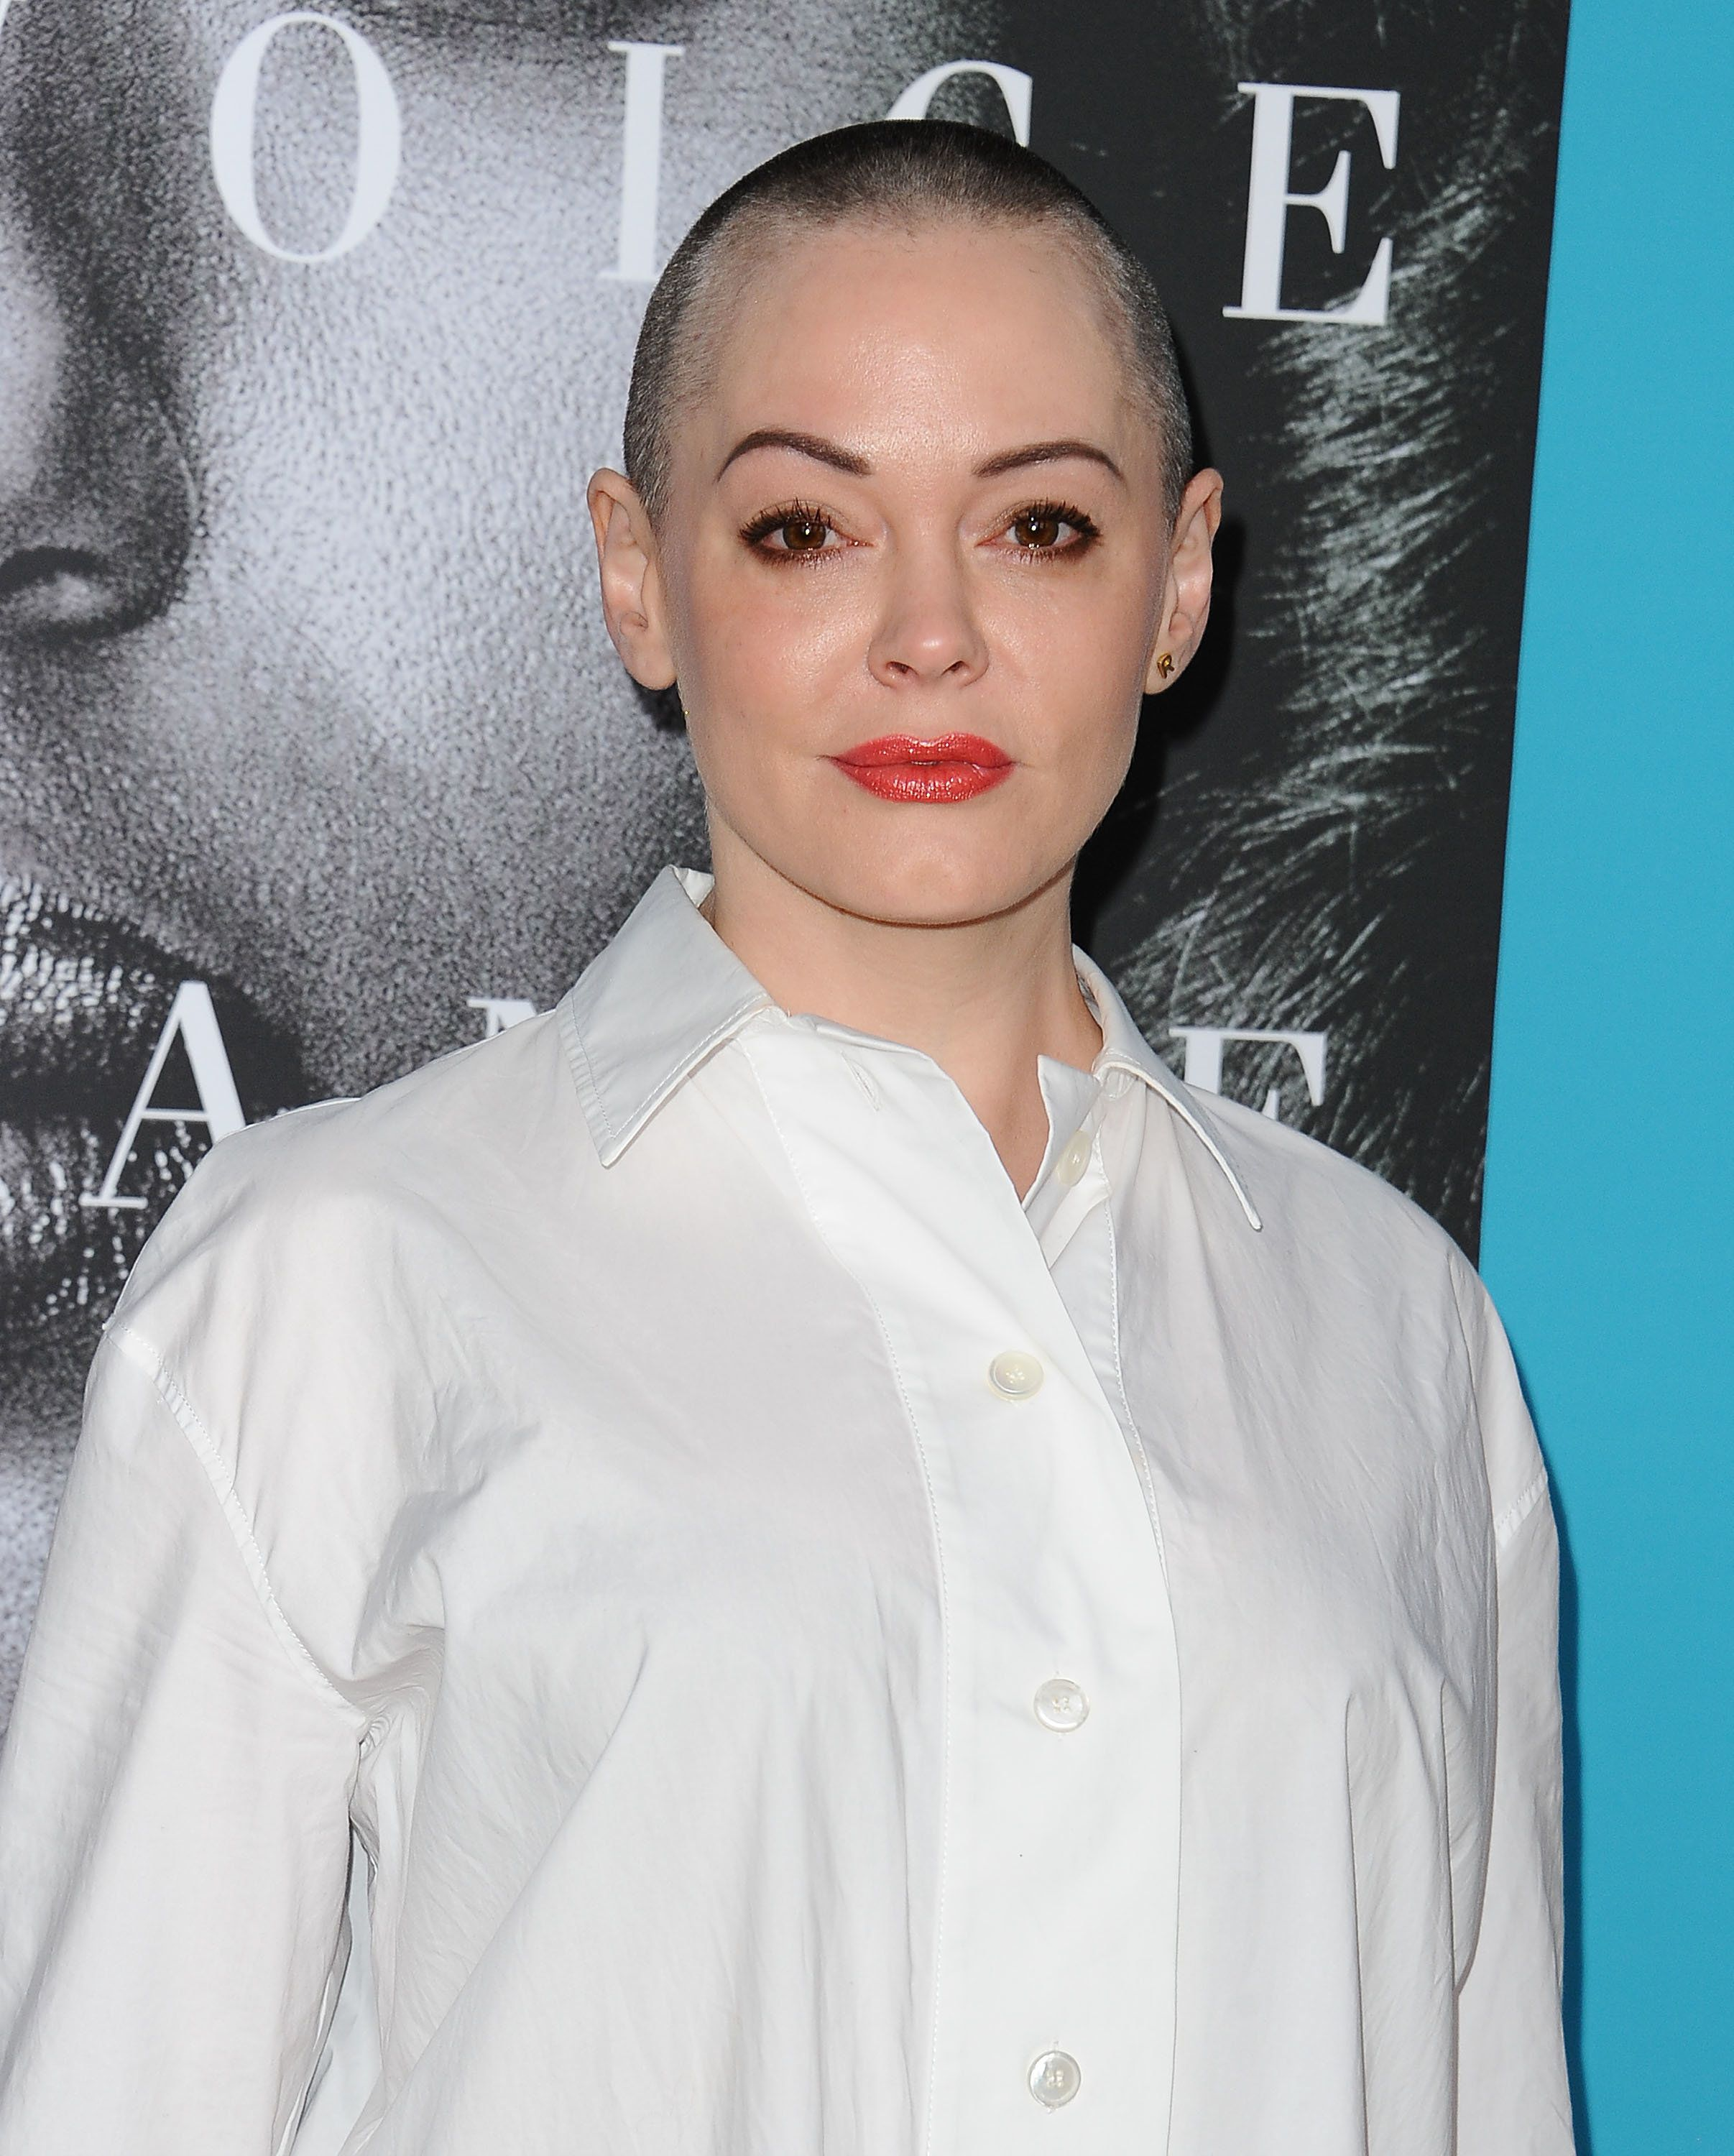 Twitter Suspends Rose McGowan's Account